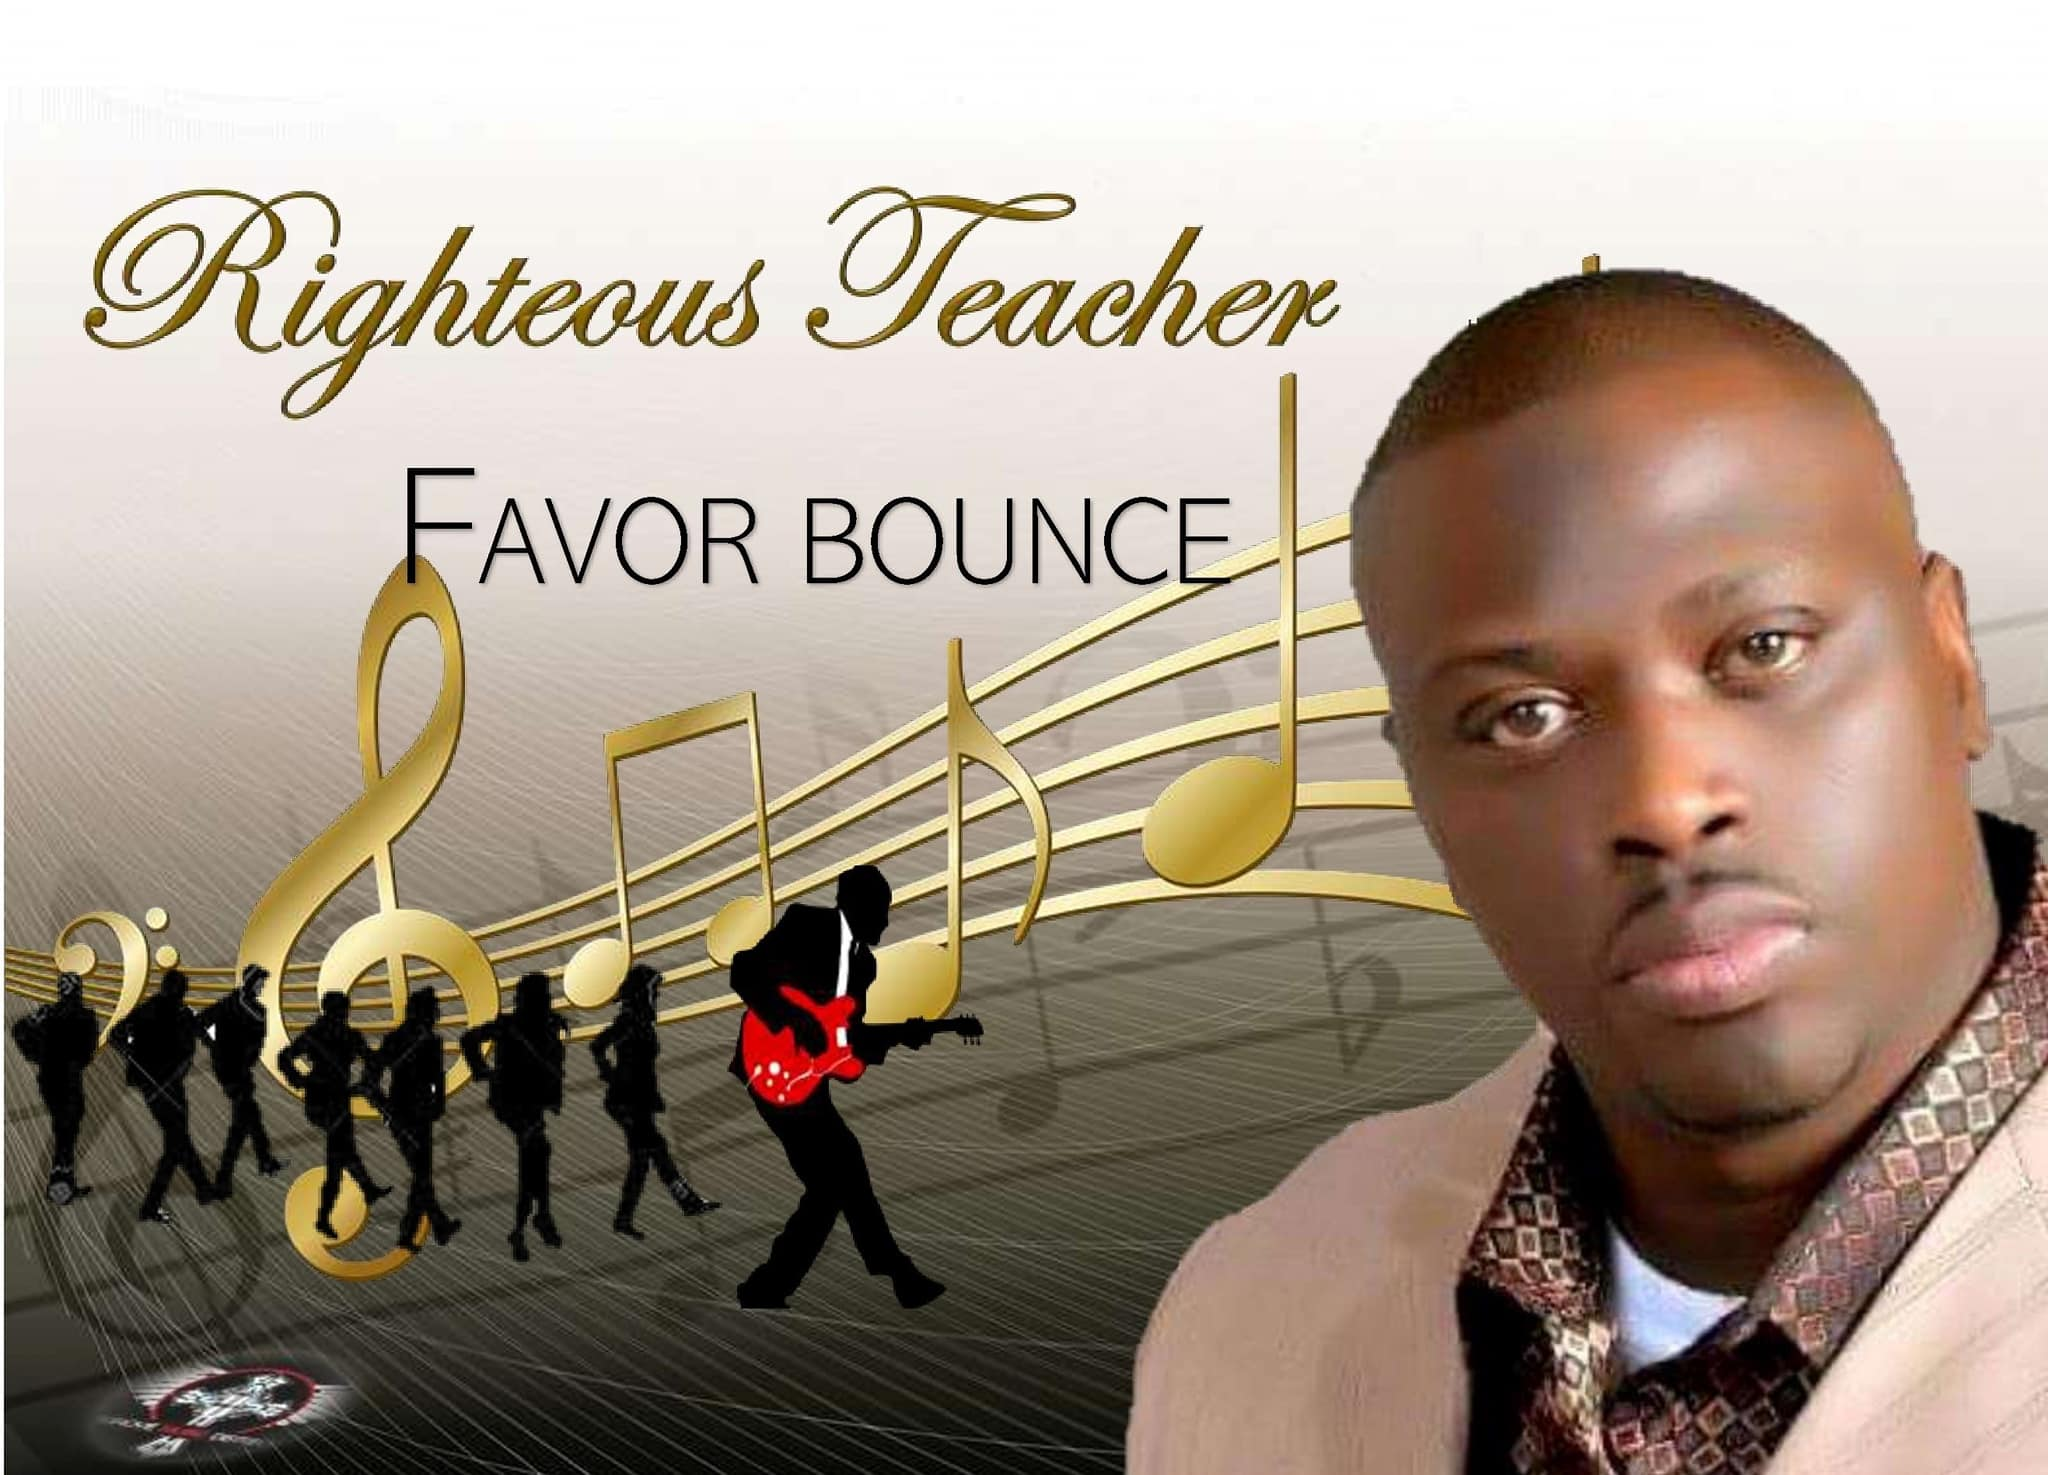 RIGHTEOUS TEACHER Delivers Uplifting Messages With Music